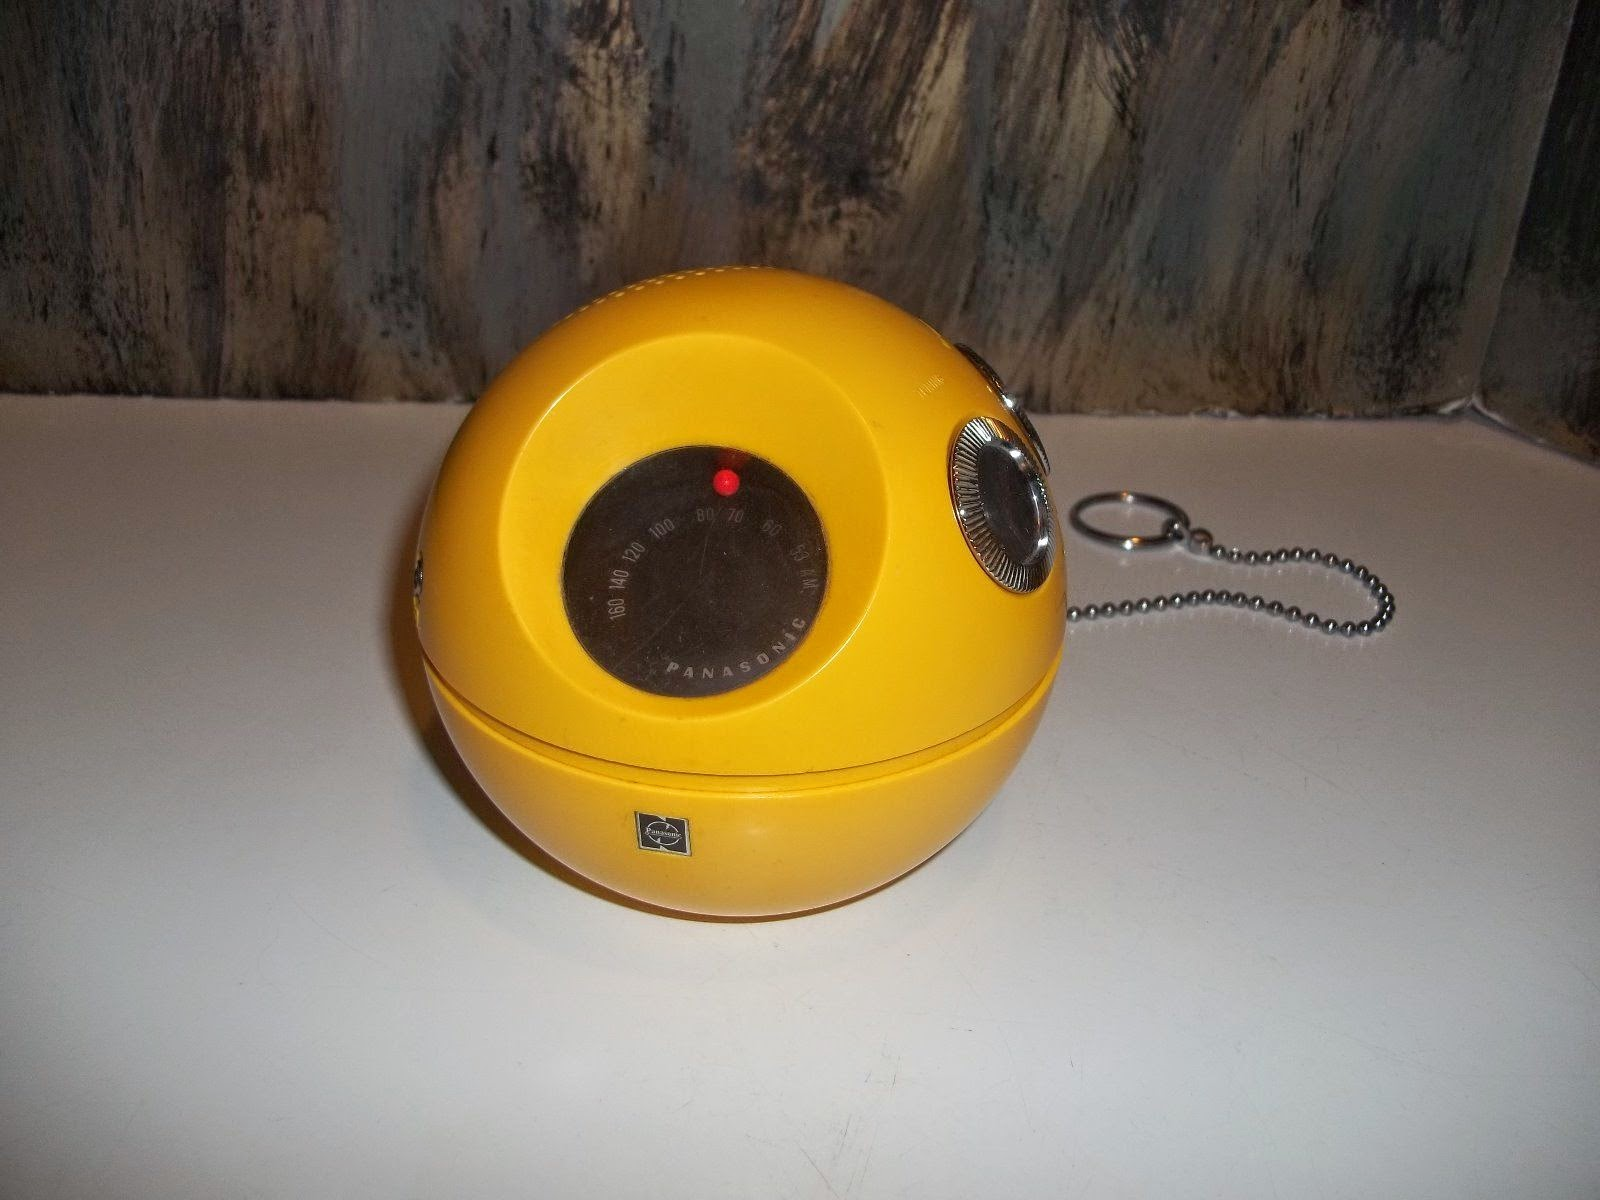 Vintage PanaPet 70 ball and chain radio Panasonic Model R-70 works